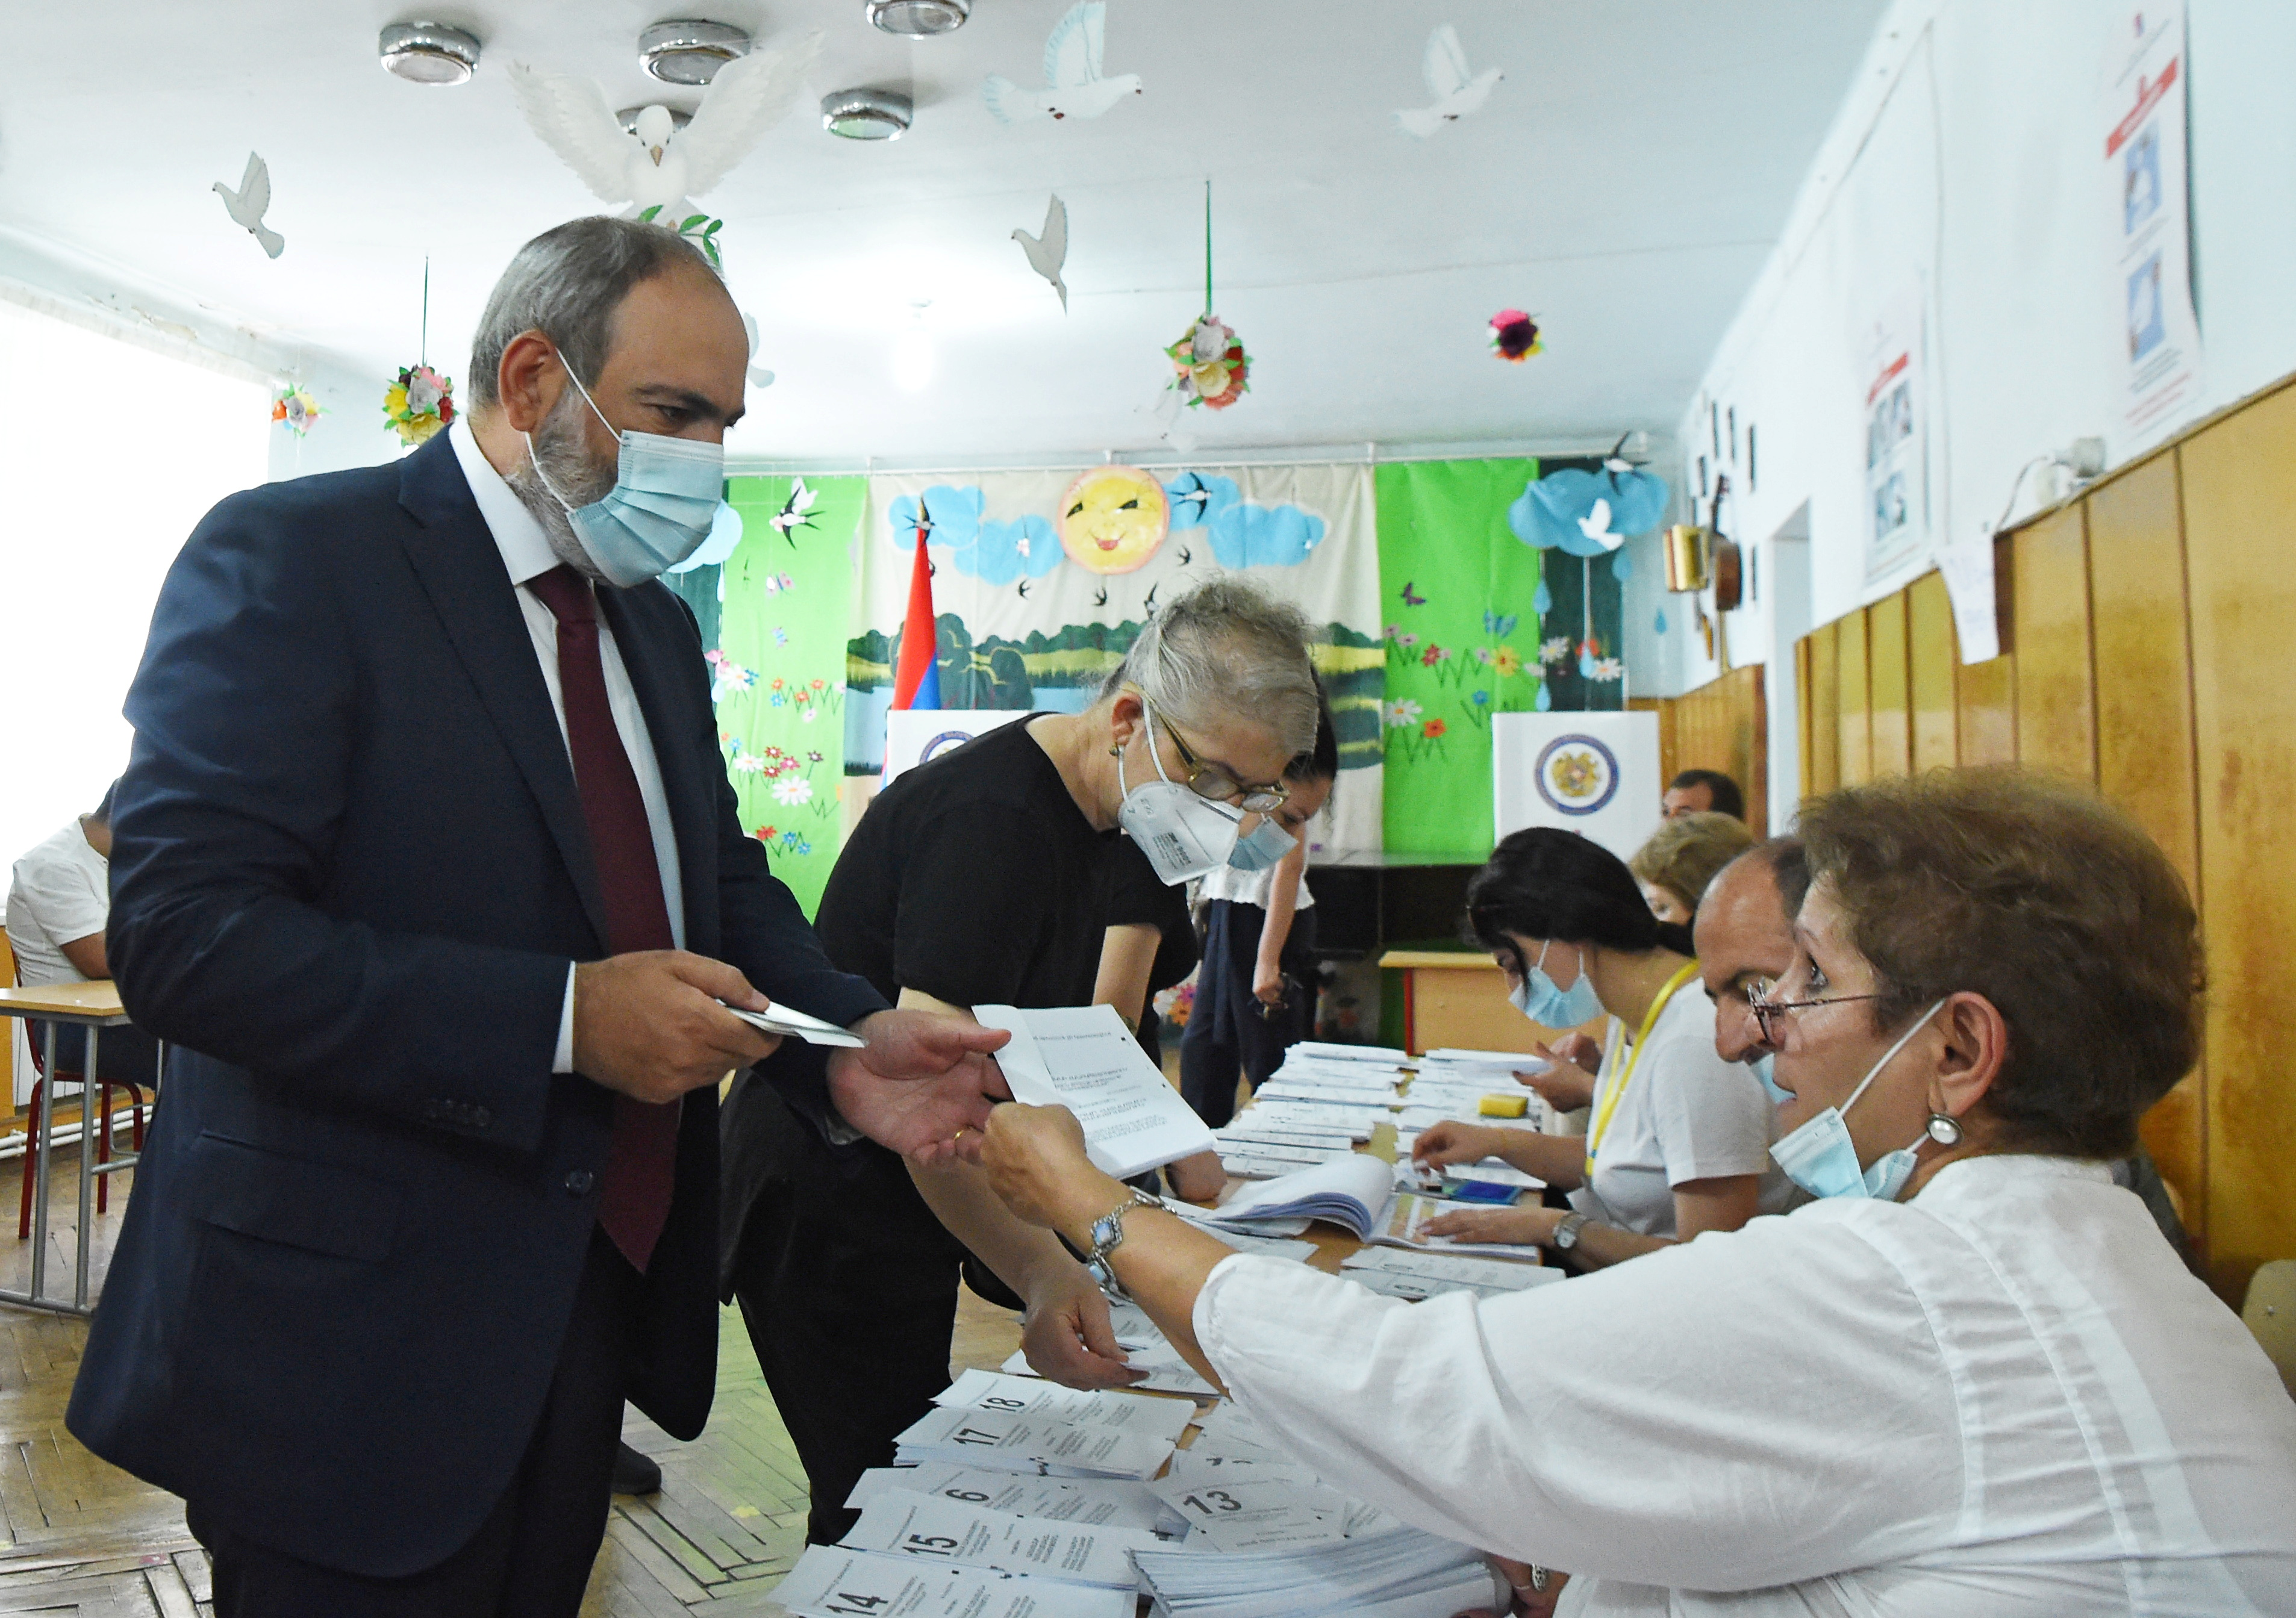 Armenia's acting Prime Minister and leader of Civil Contract party Nikol Pashinyan receives a ballot at a polling station during the snap parliamentary election in Yerevan, Armenia June 20, 2021. Lusi Sargsyan/Photolure via REUTERS